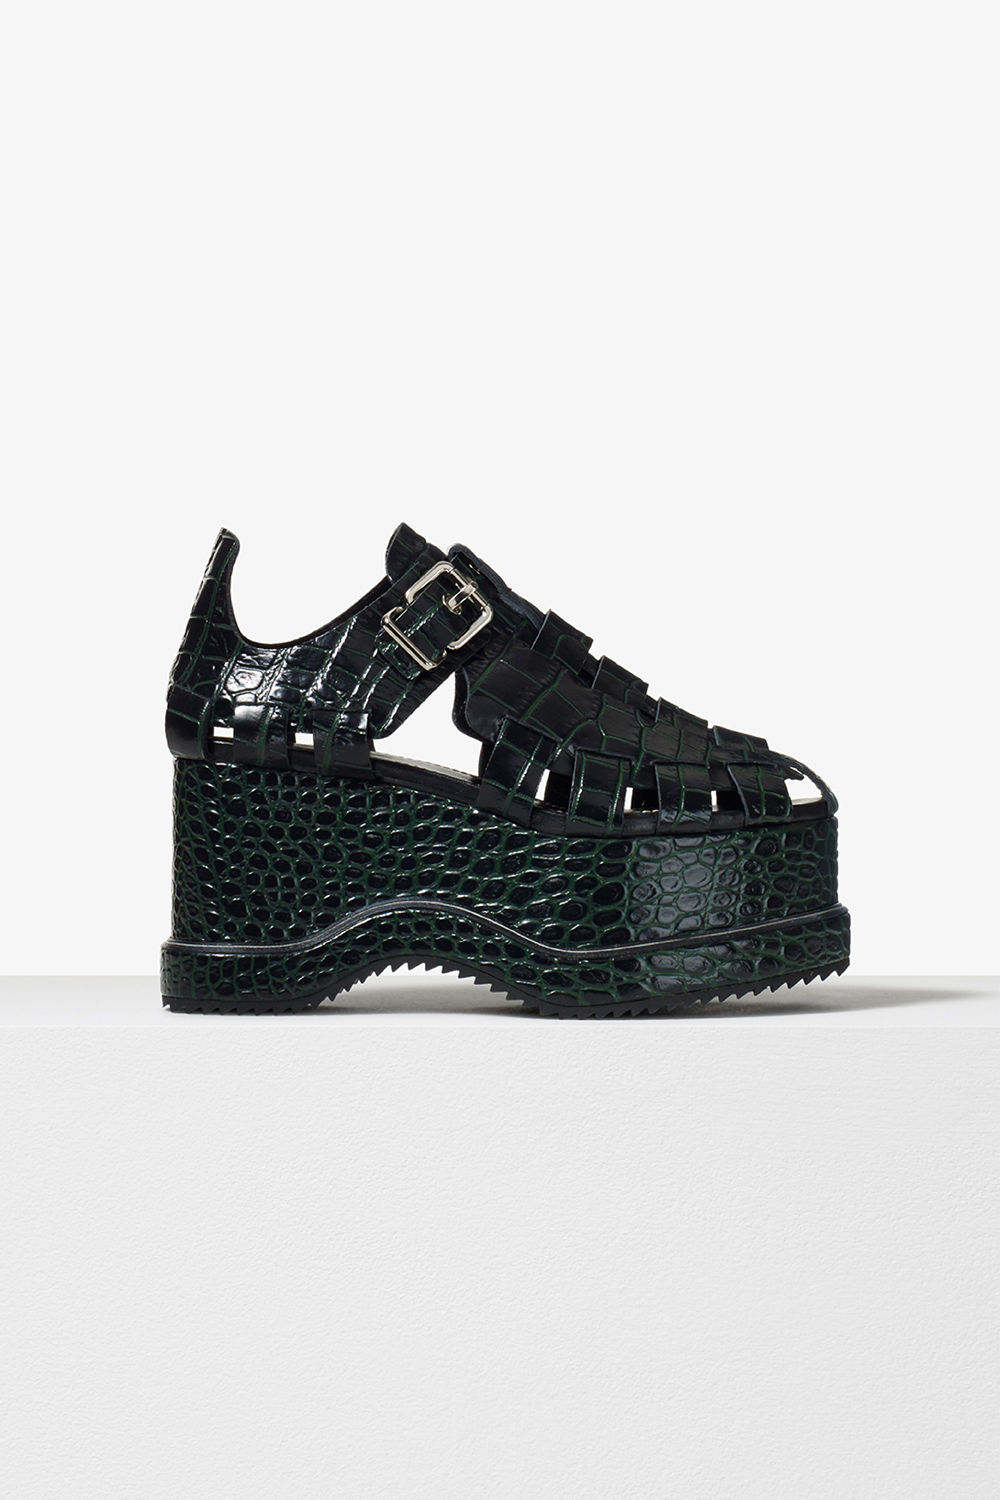 proenza schouler pre fall 2017 black green embossed croc calf leather woven close toe platform sandal